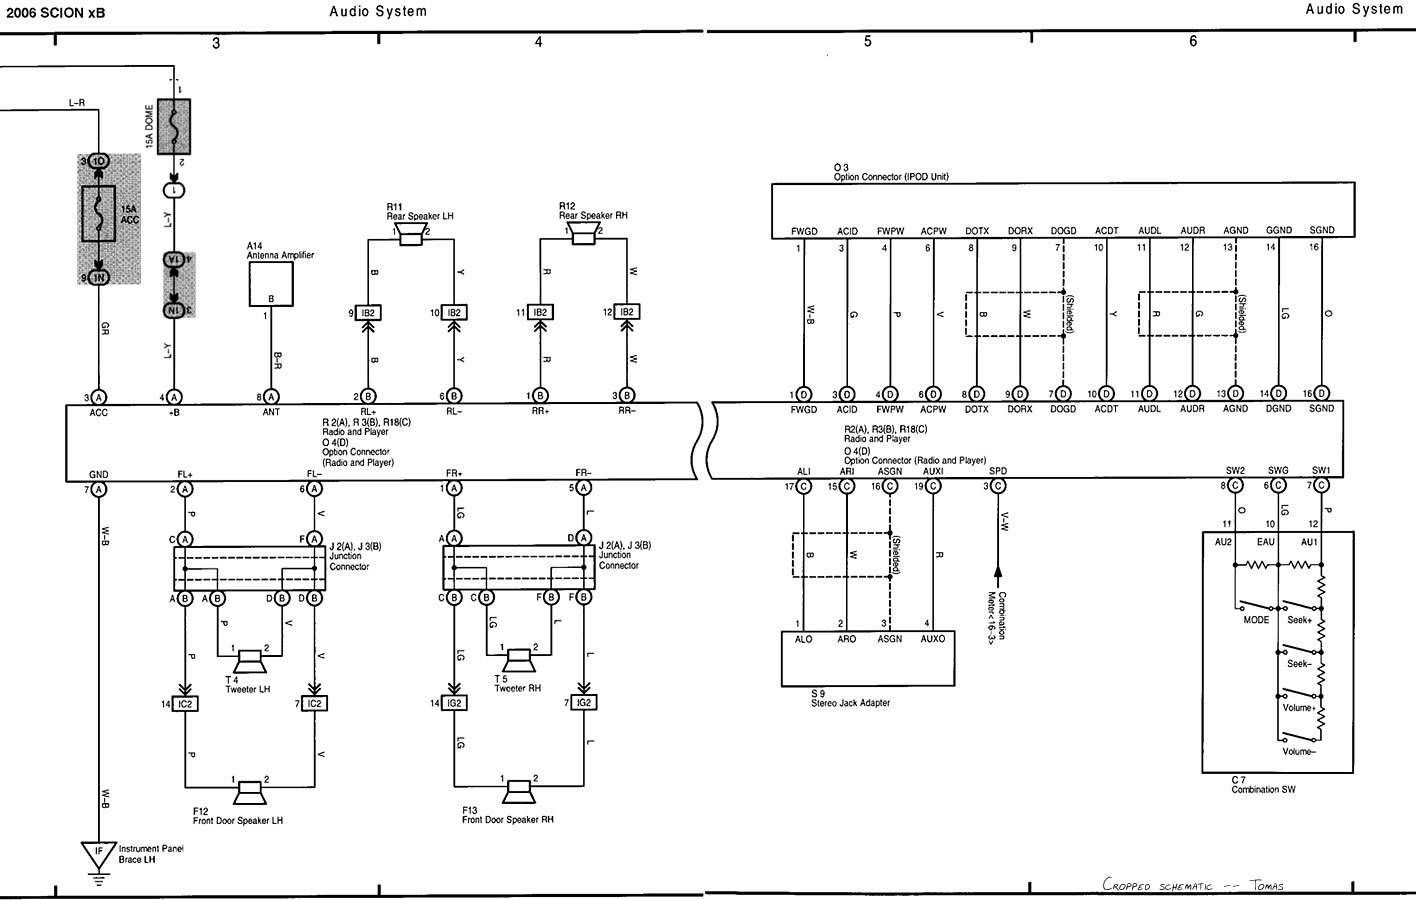 DIAGRAM] 2010 Scion Tc Radio Wiring Diagram FULL Version HD Quality Wiring  Diagram - PDFMEXICO.HOTEL-PATTON.FRpdfmexico.hotel-patton.fr